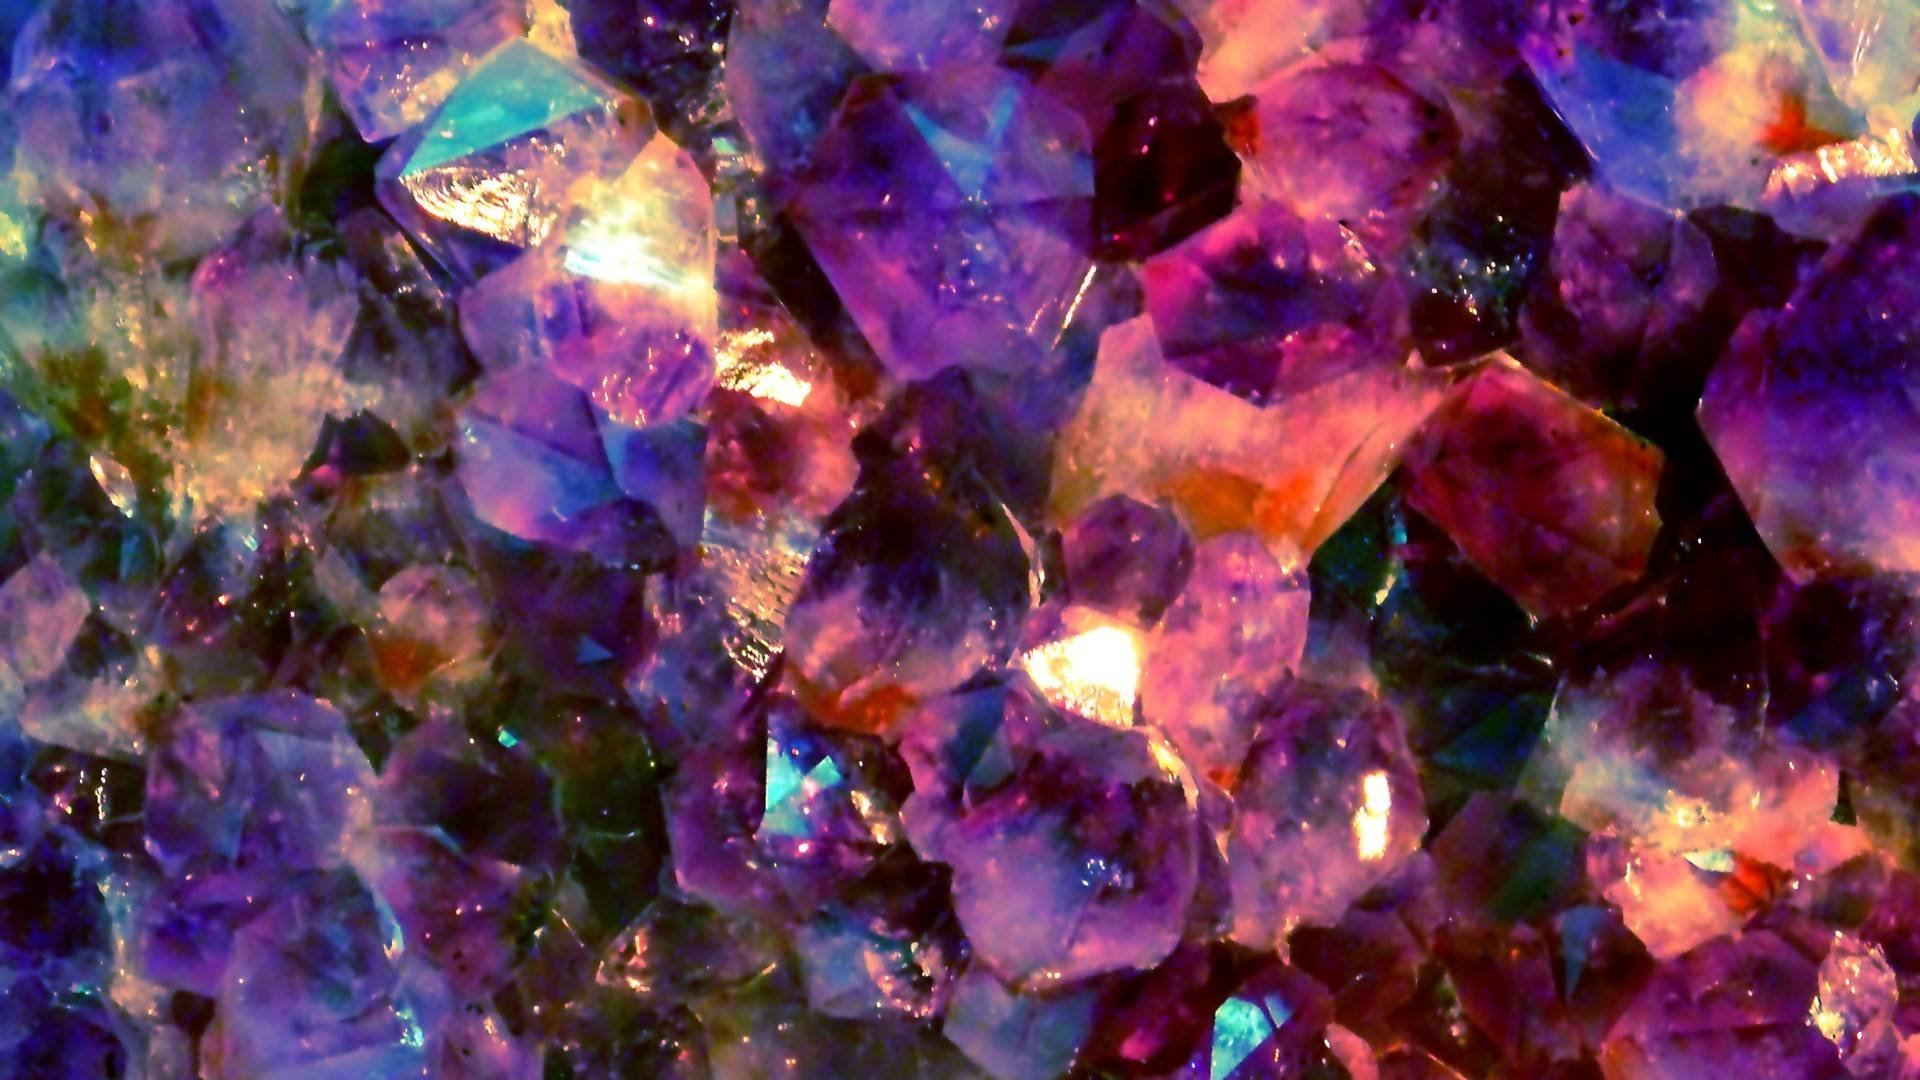 Crystals and lucid dreaming